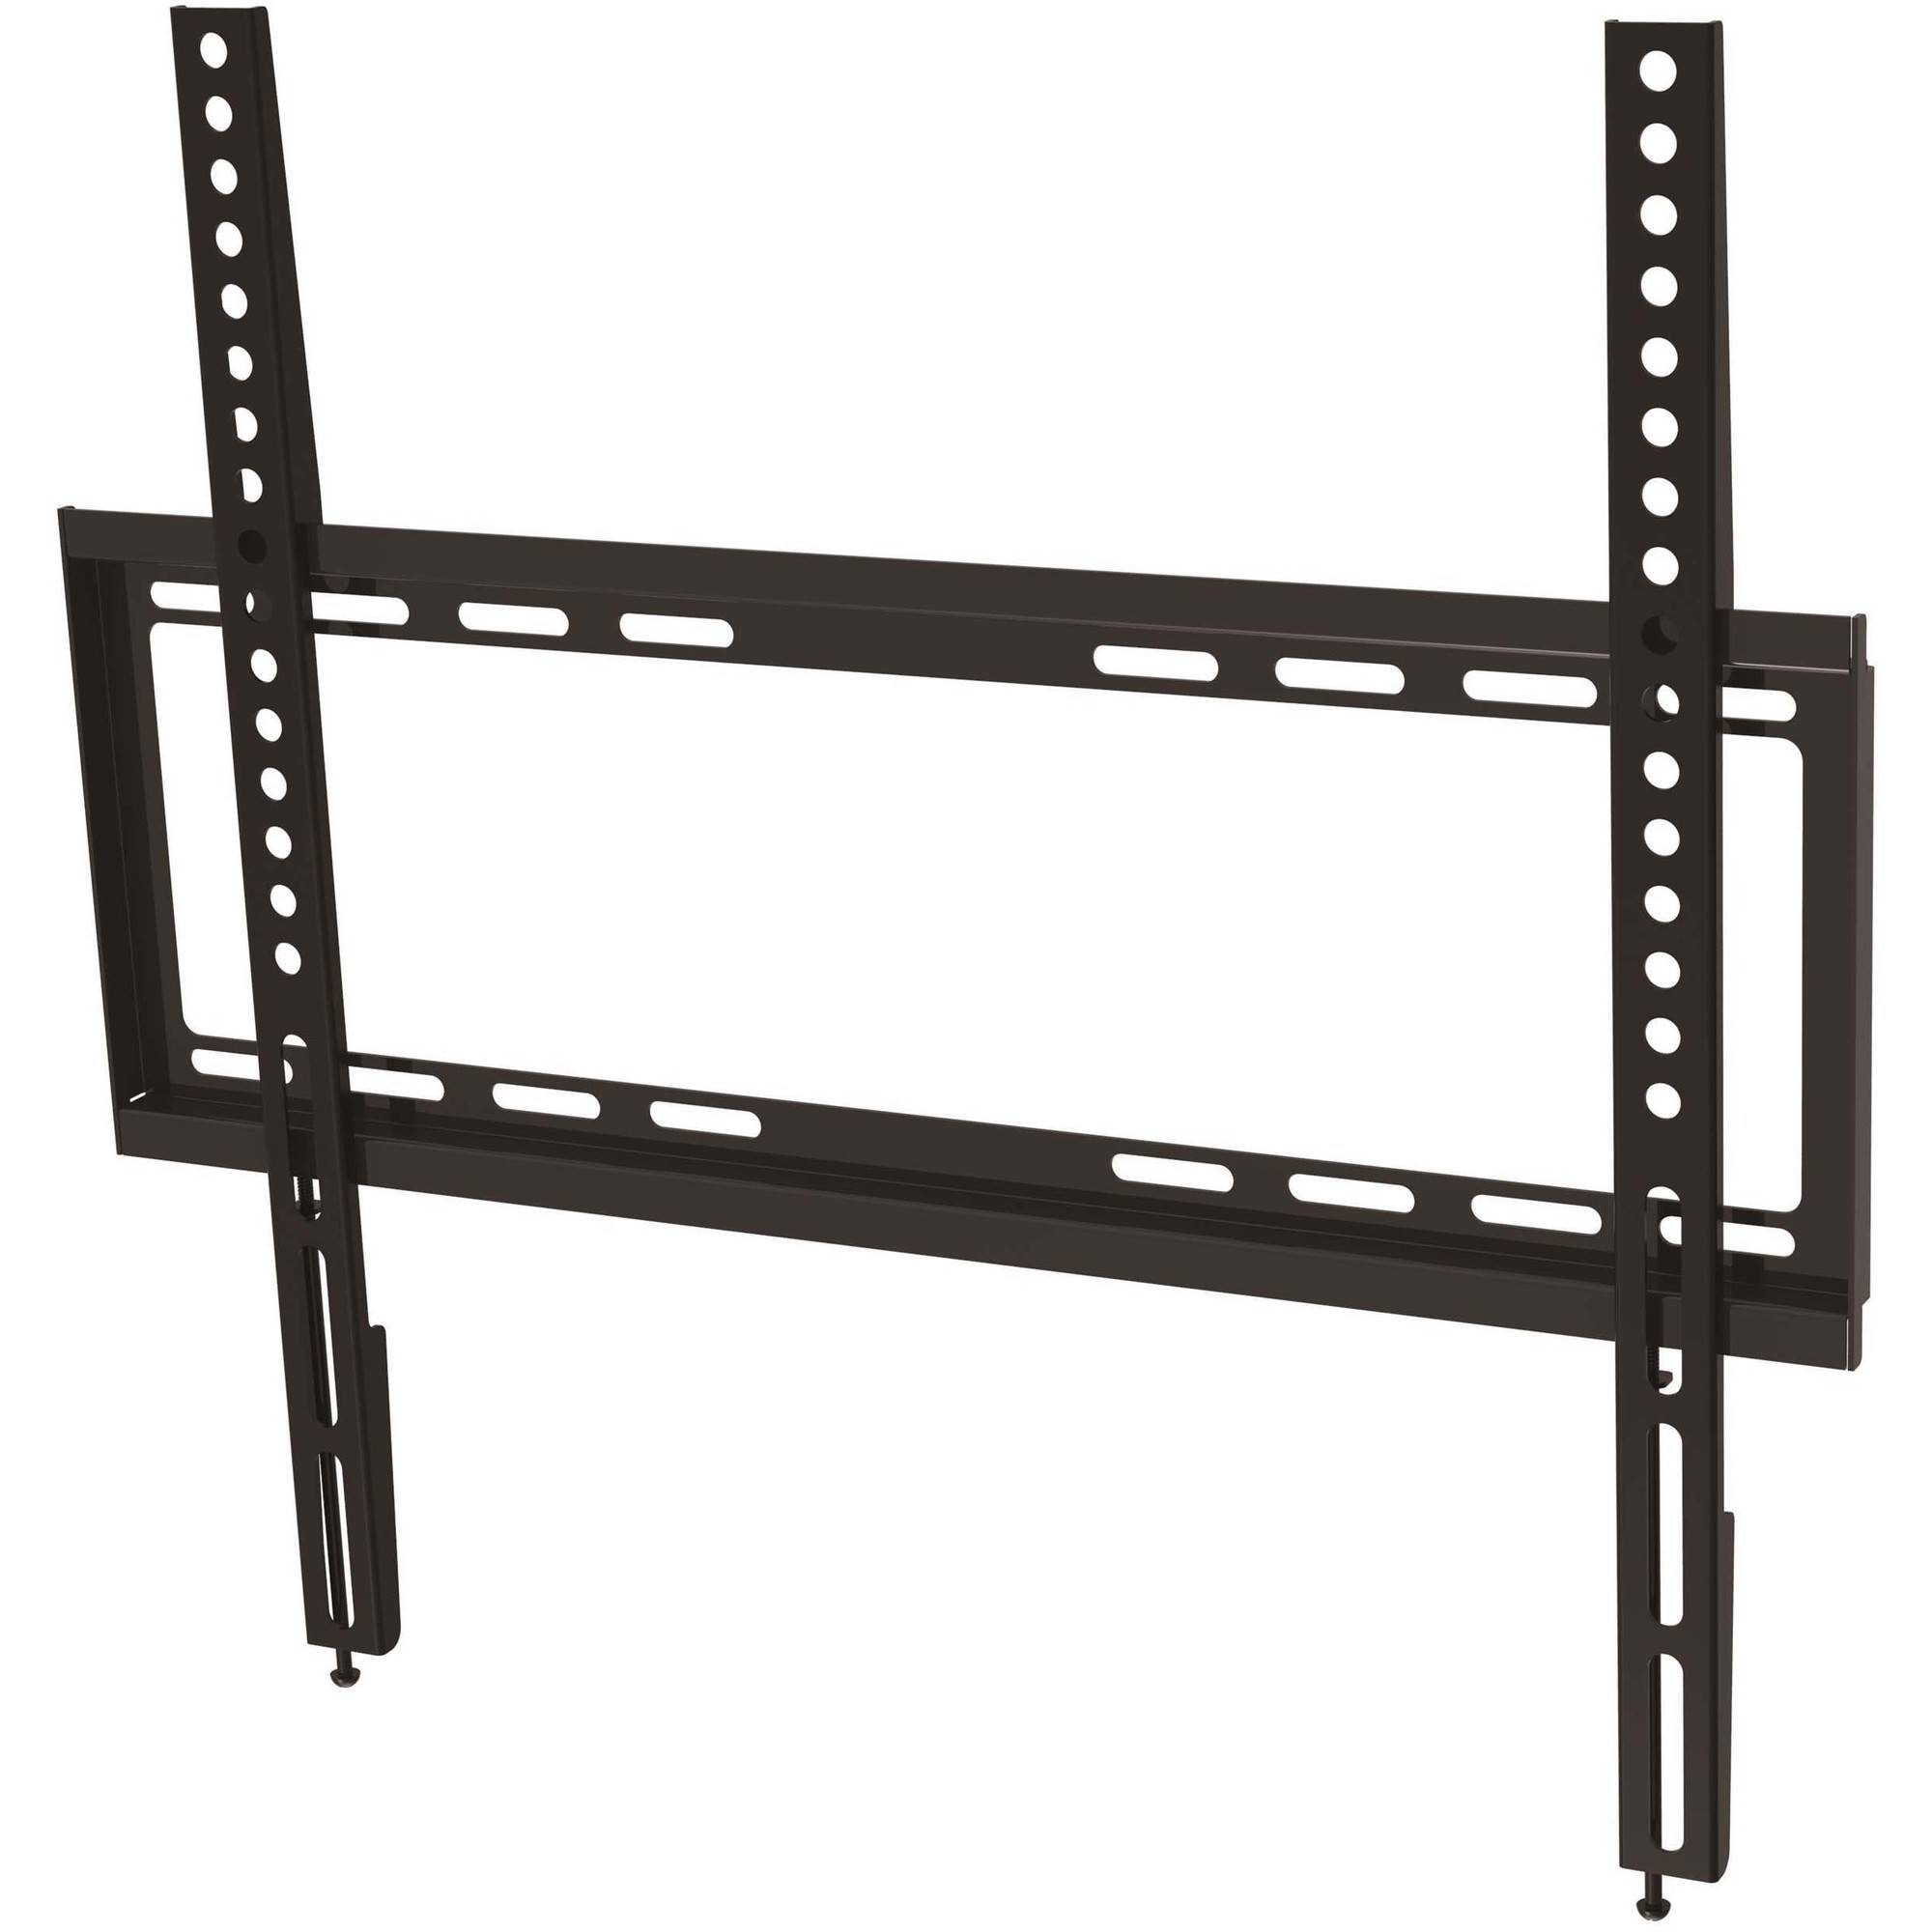 "ProHT 5438 Fixed VESA Wall Mount fits 32"" to 55"" LED/LCD TV, Black"